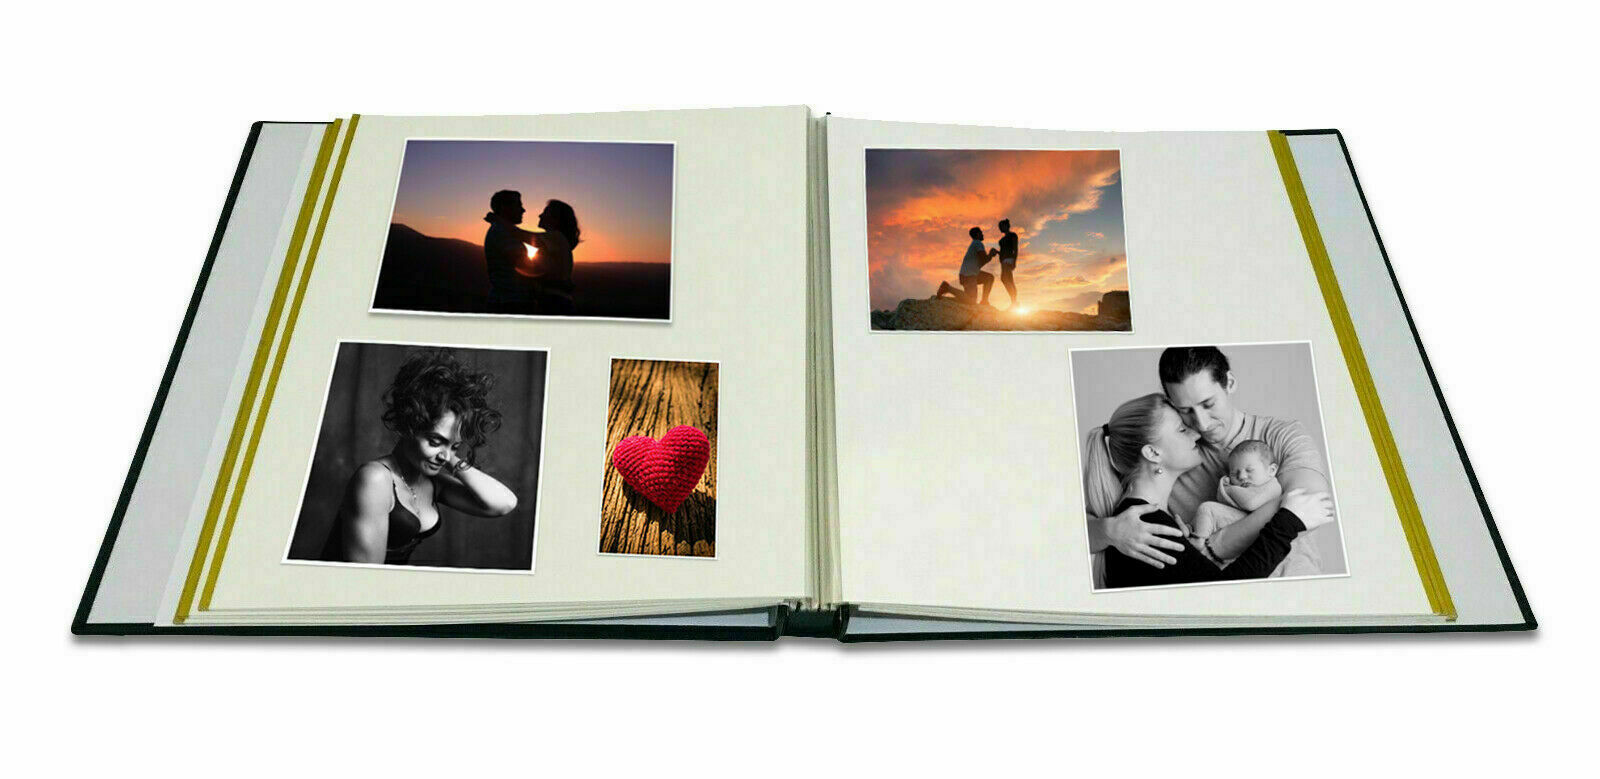 Large Self Adhesive Photo Album 20 Sheets Hold Various Sized Up to A4 XMAS GIFT